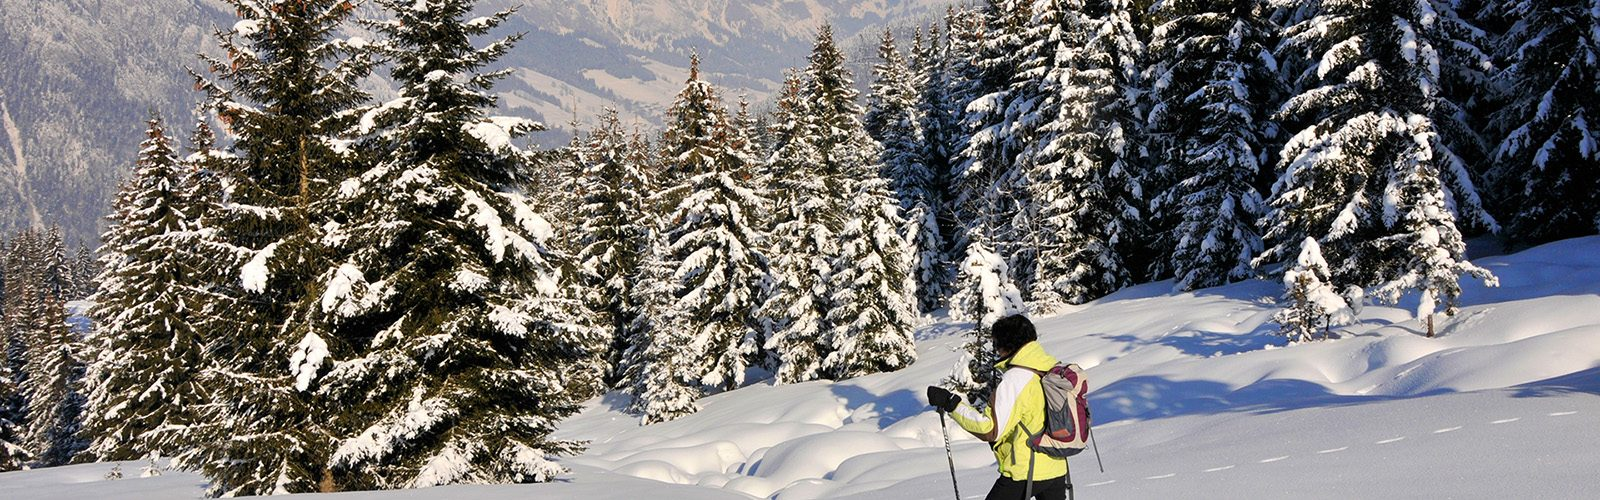 """Snowhoes hiking - """"The Autigny chalets"""""""